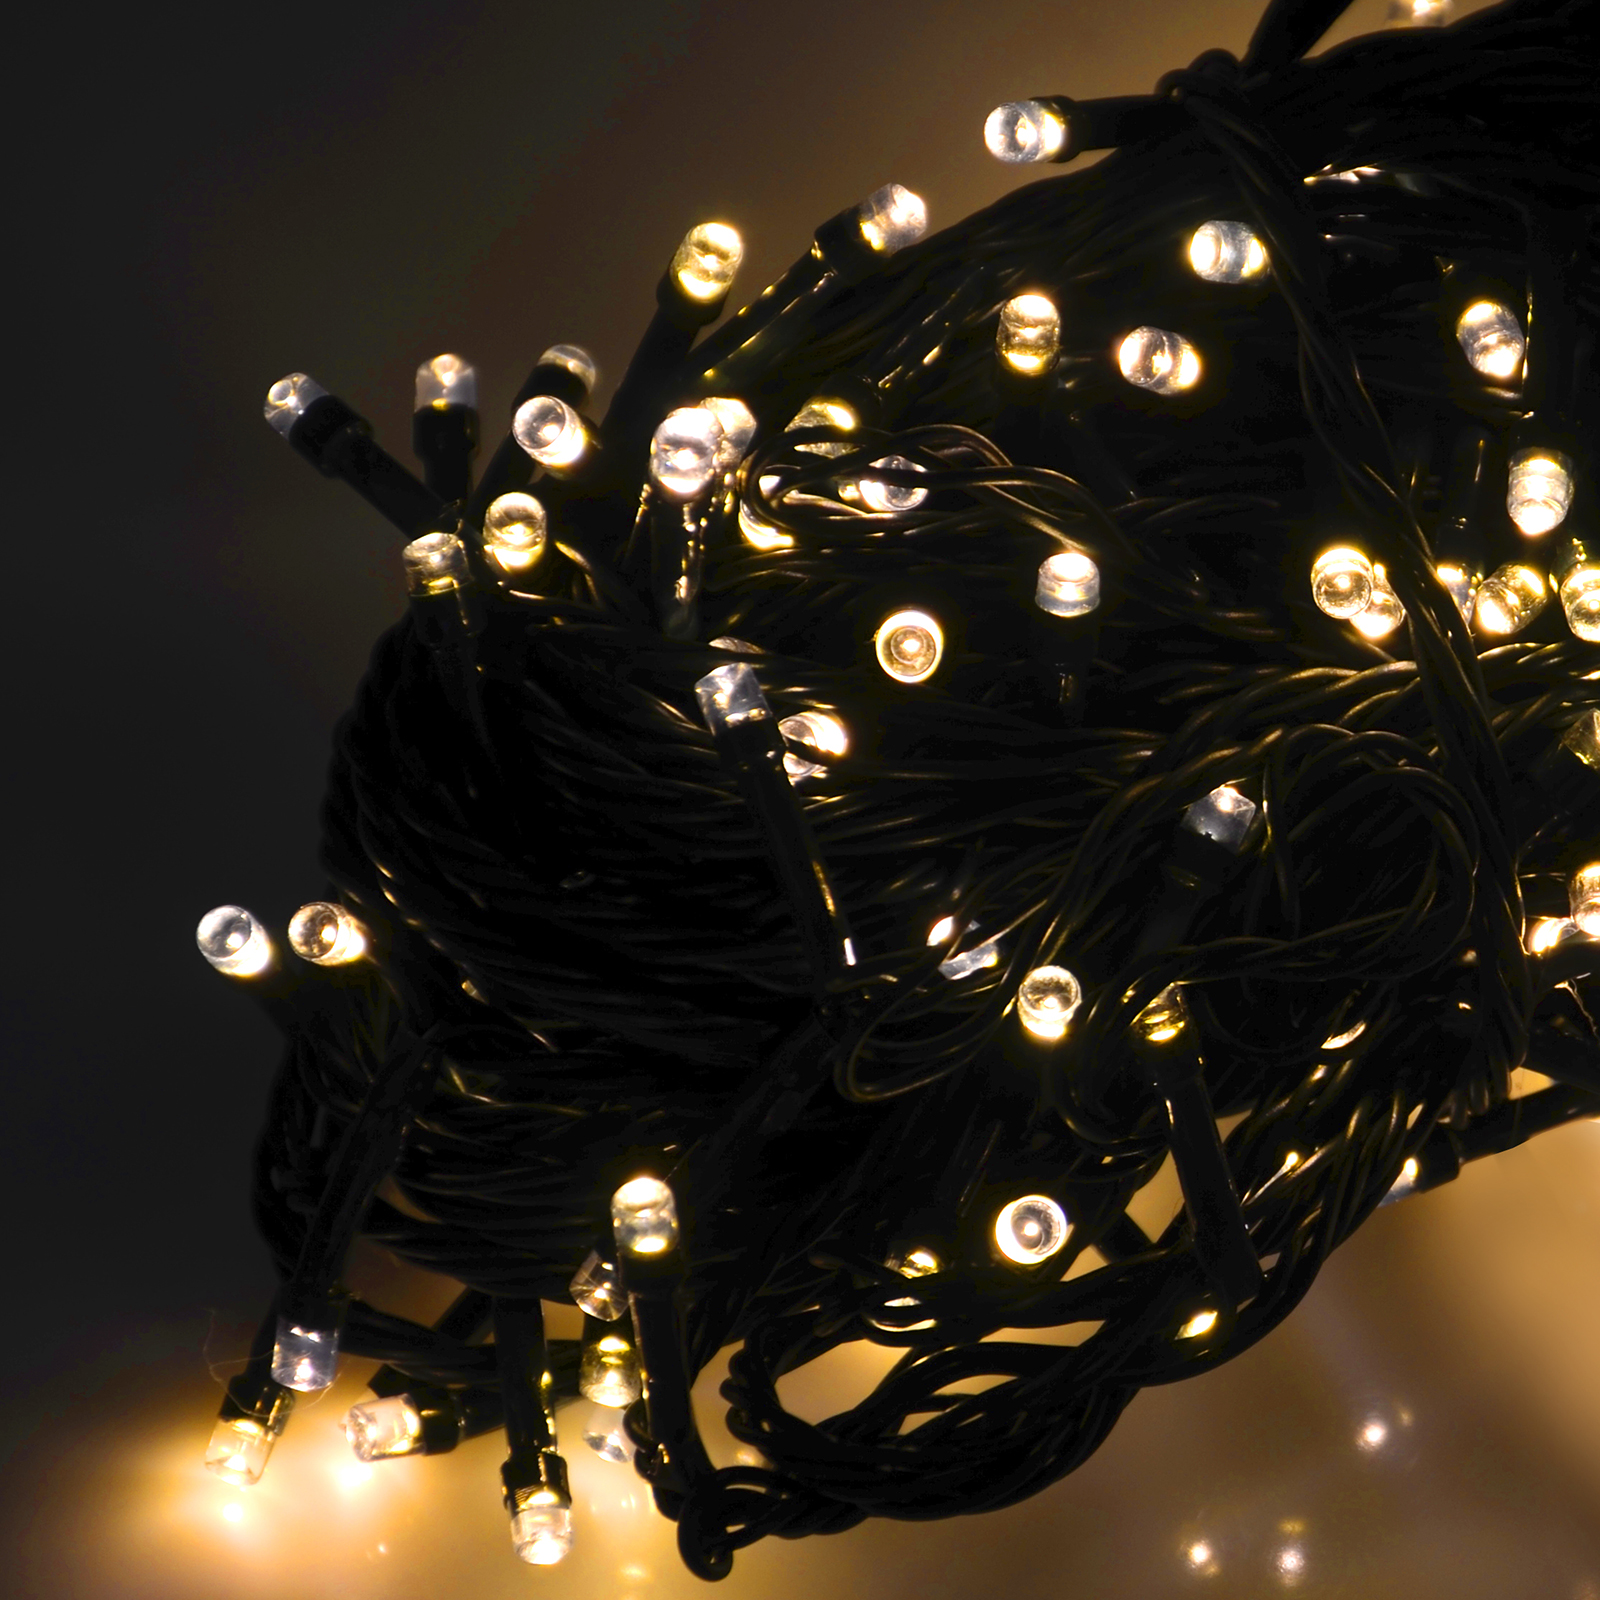 Christmas String Lights Indoor : String Of 200 Battery Operated Chasing LED Lights Chain Indoor Outdoor Christmas